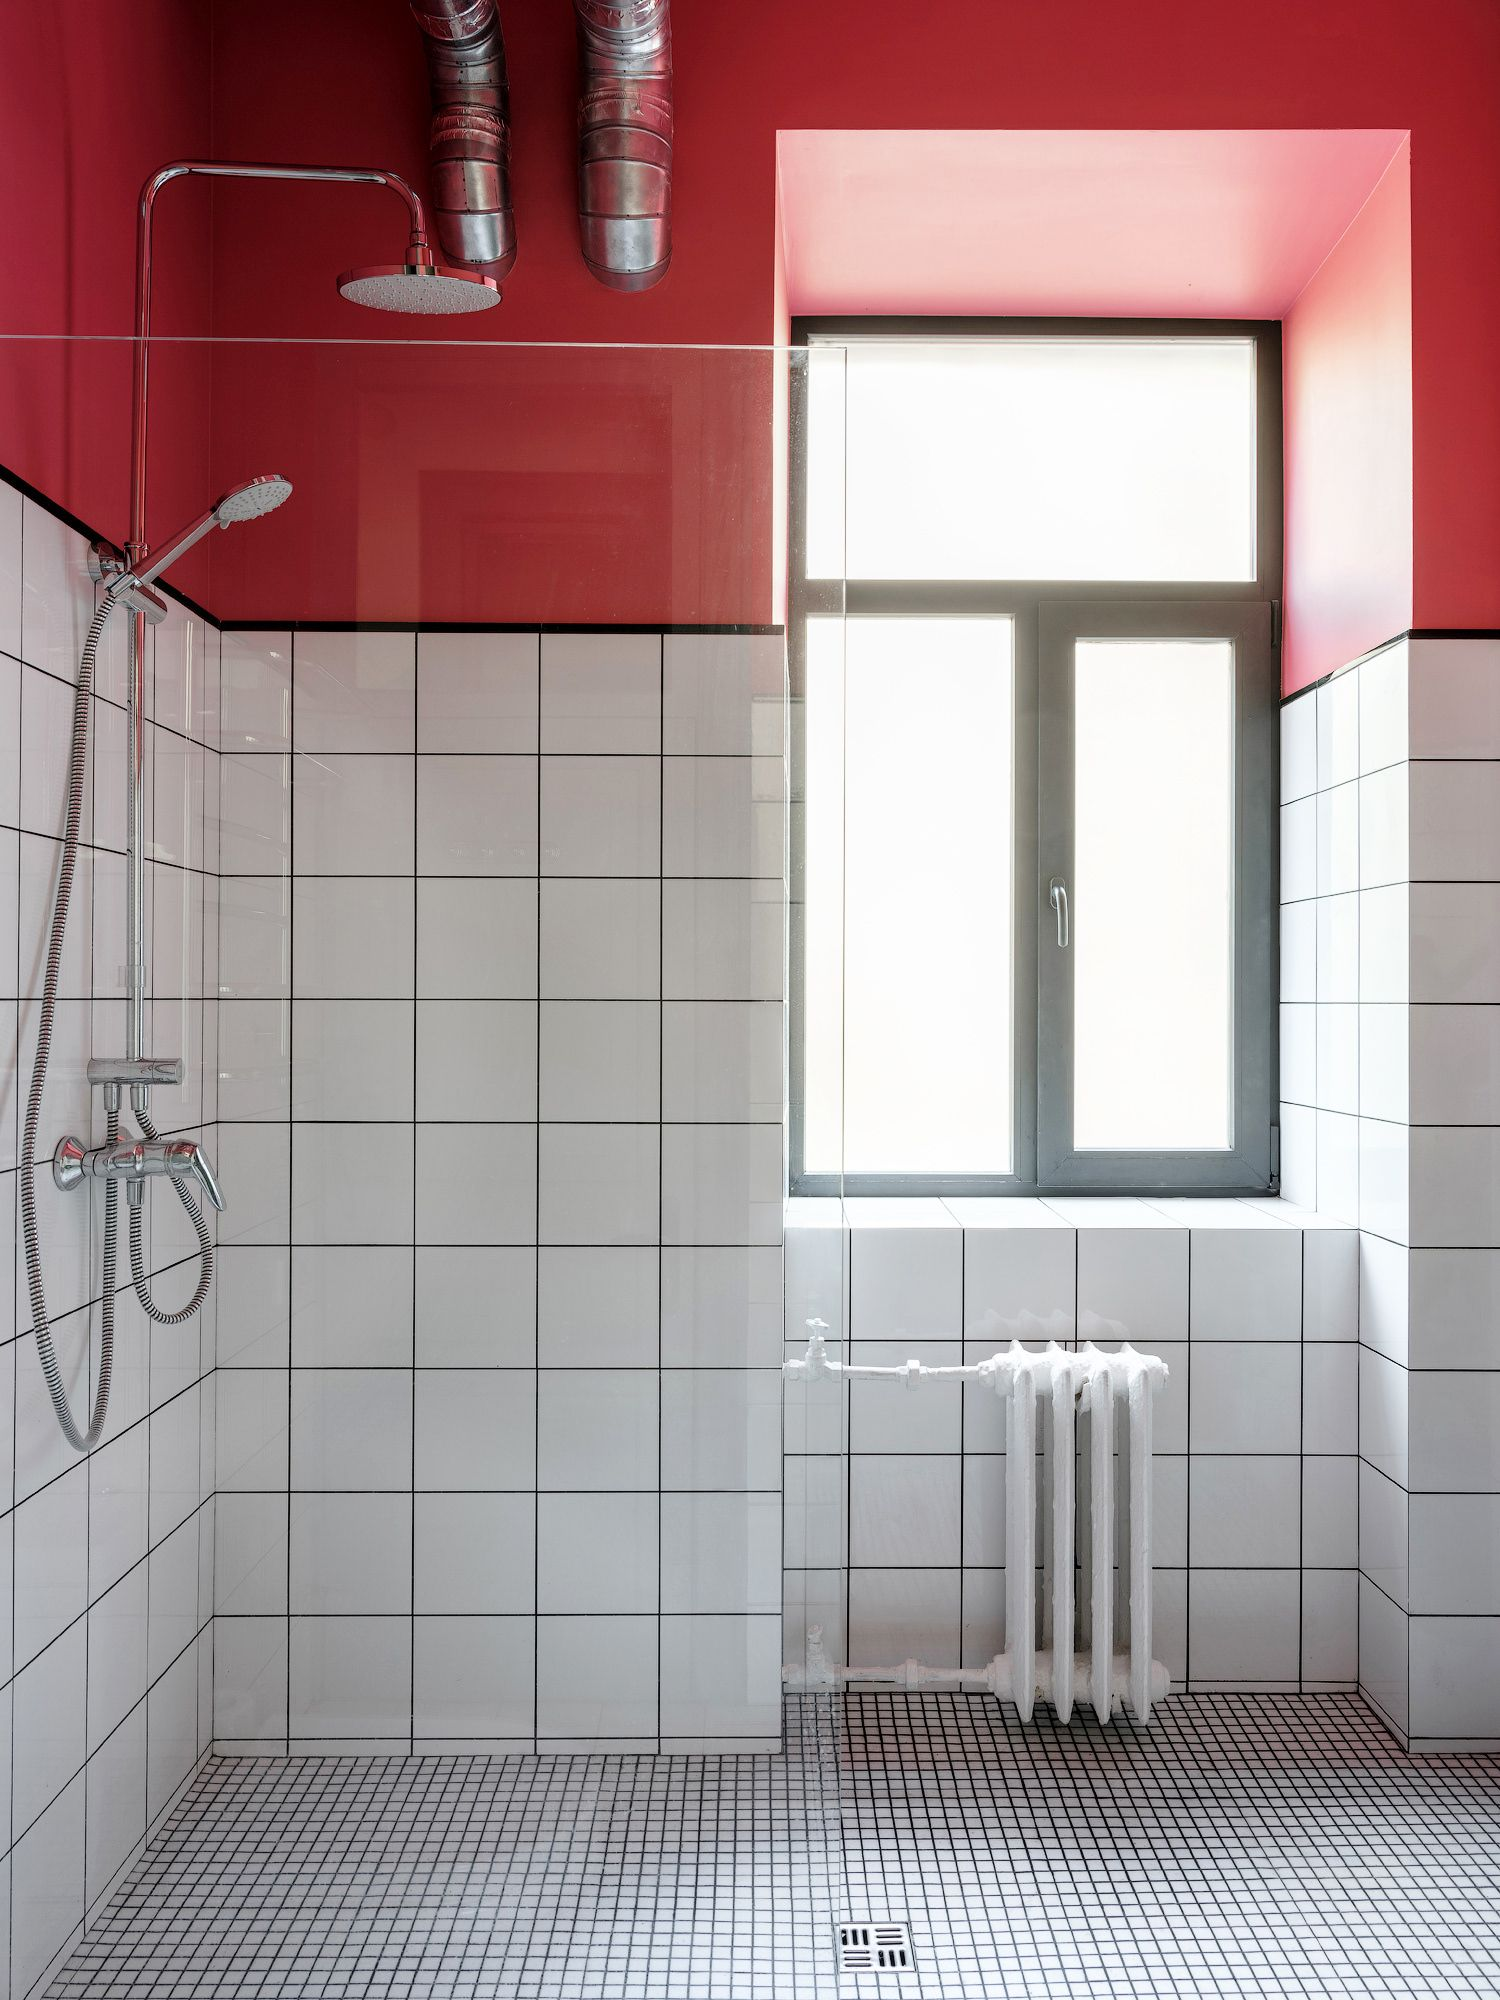 How to decorate a small bathroom and still save space ... on Simple Bathroom Designs For Small Spaces  id=36343